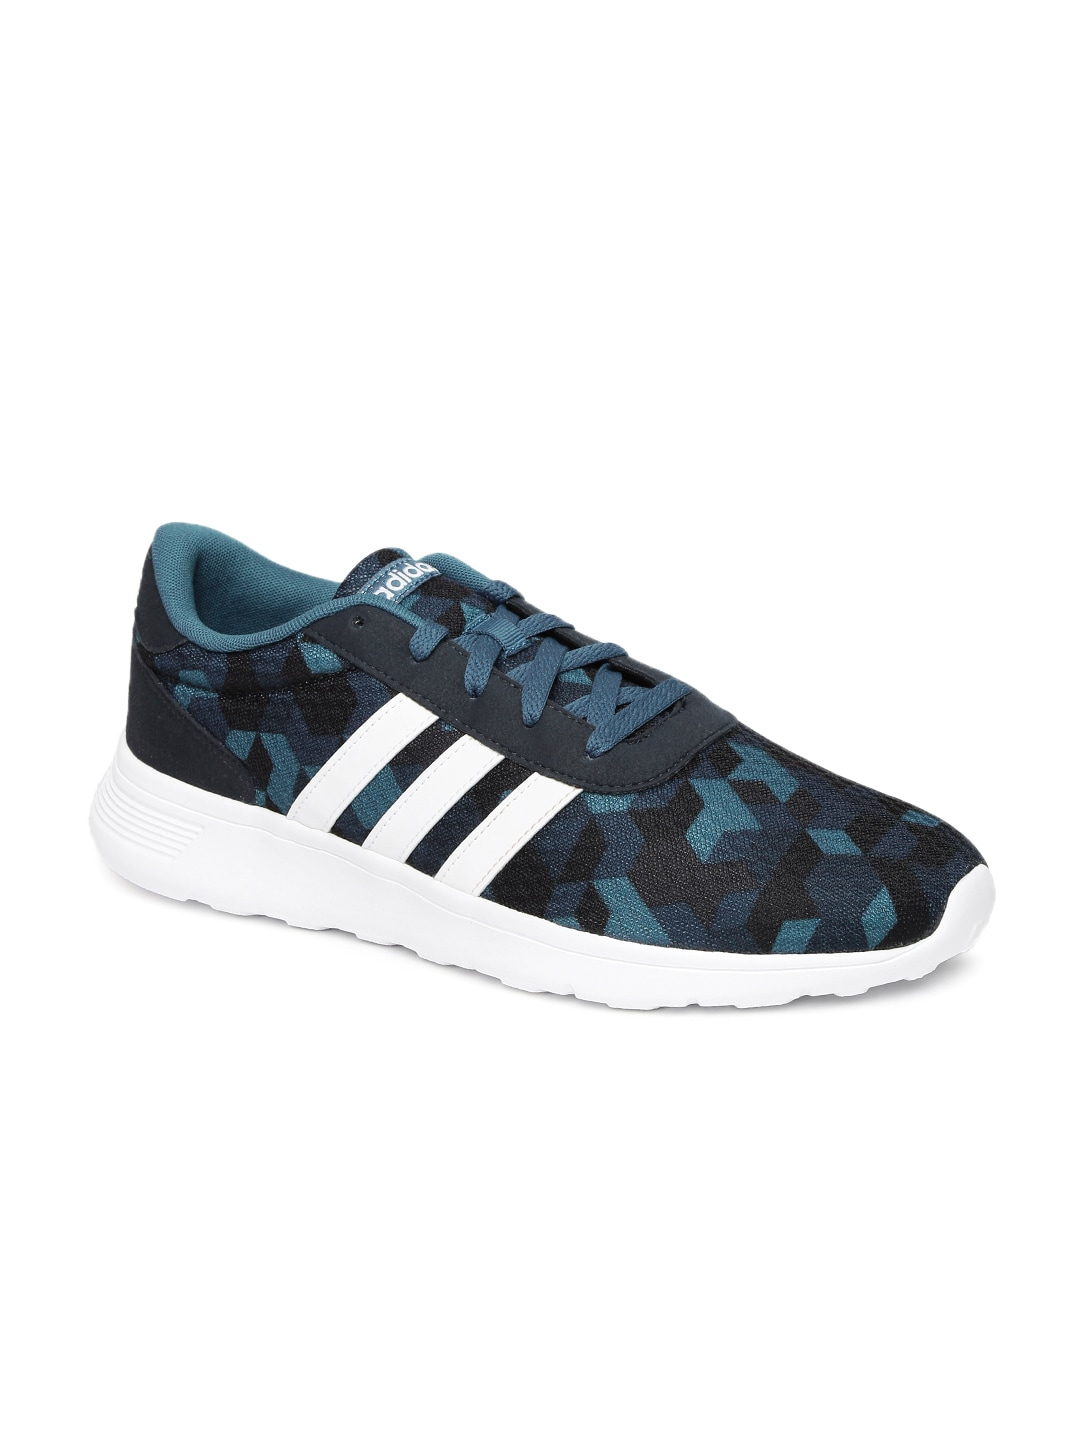 0425f478cb8d Adidas Canvas Shoes - Buy Adidas Canvas Shoes Online in India